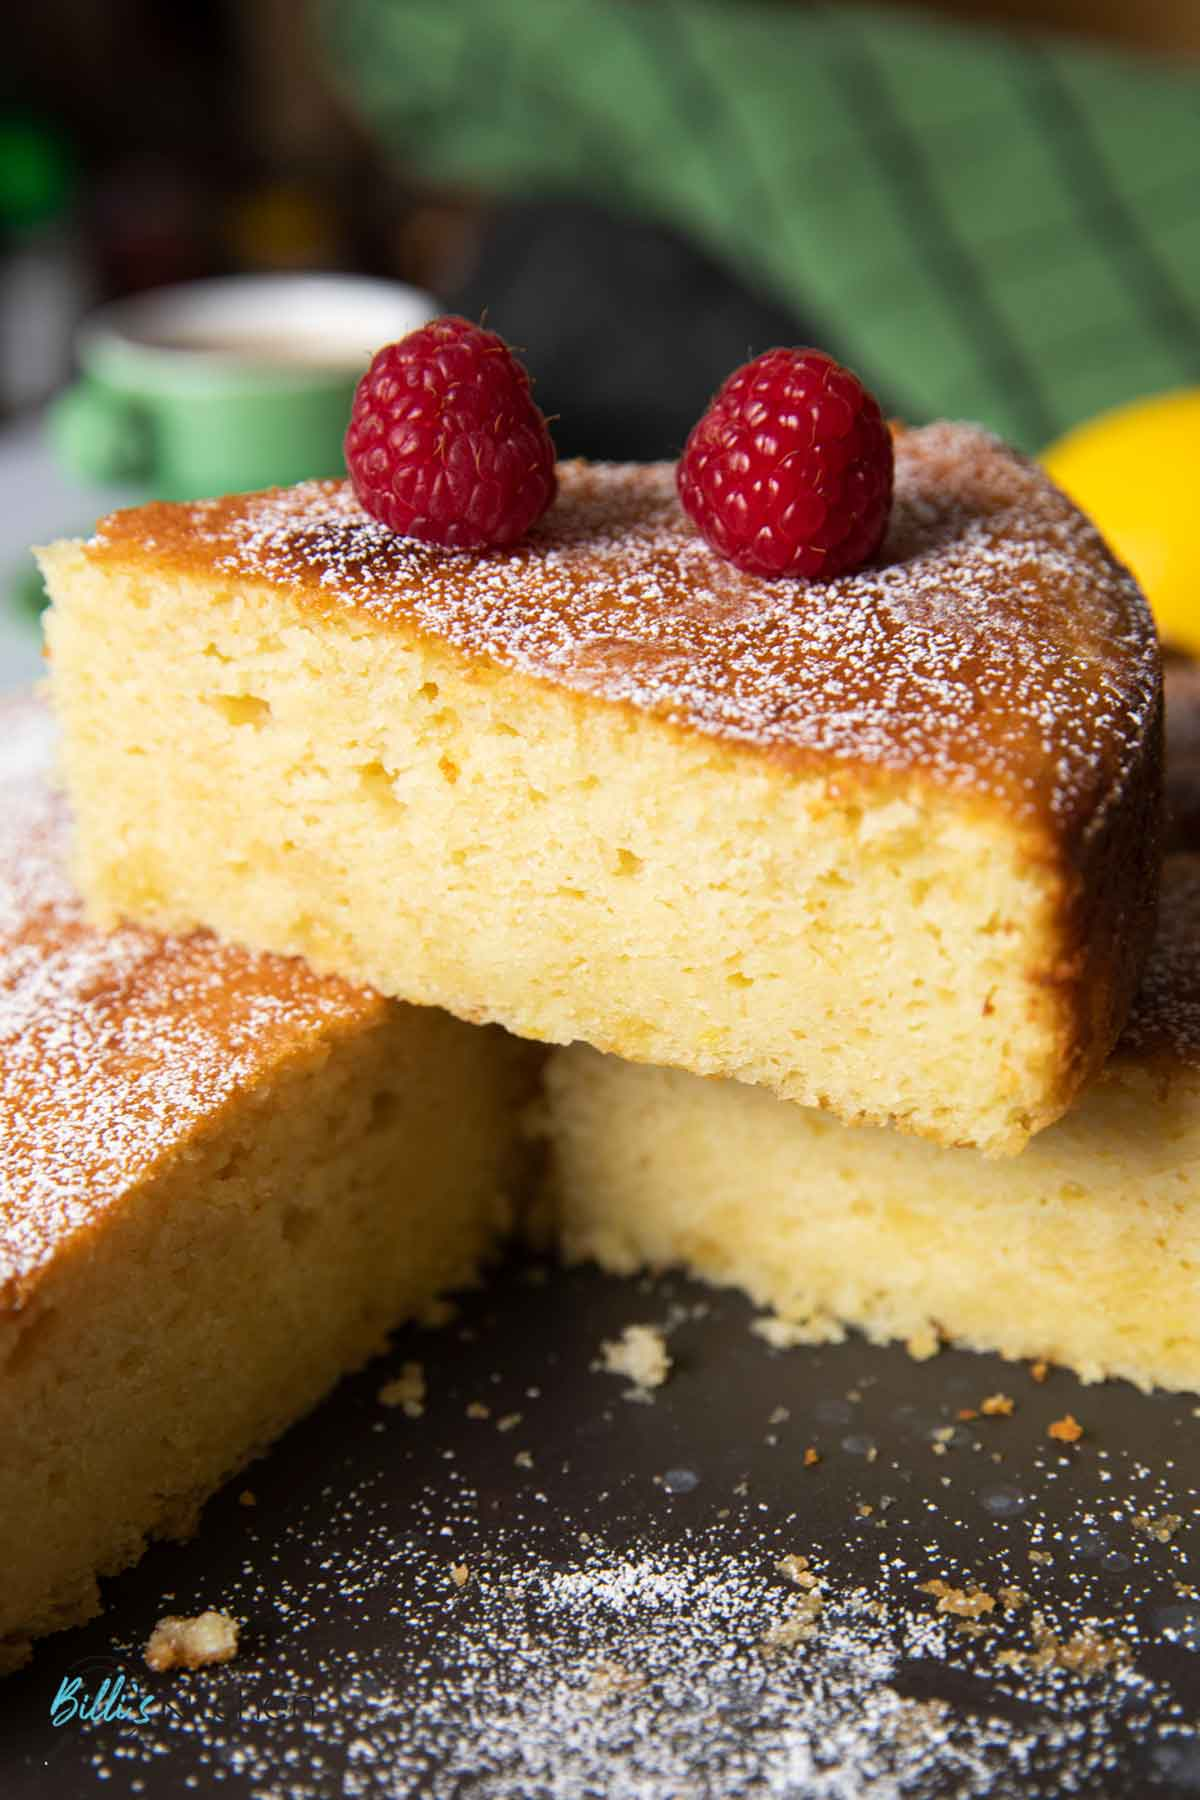 A closer shot of a slice of lemon ricotta cake, highlighting the texture of the cake.